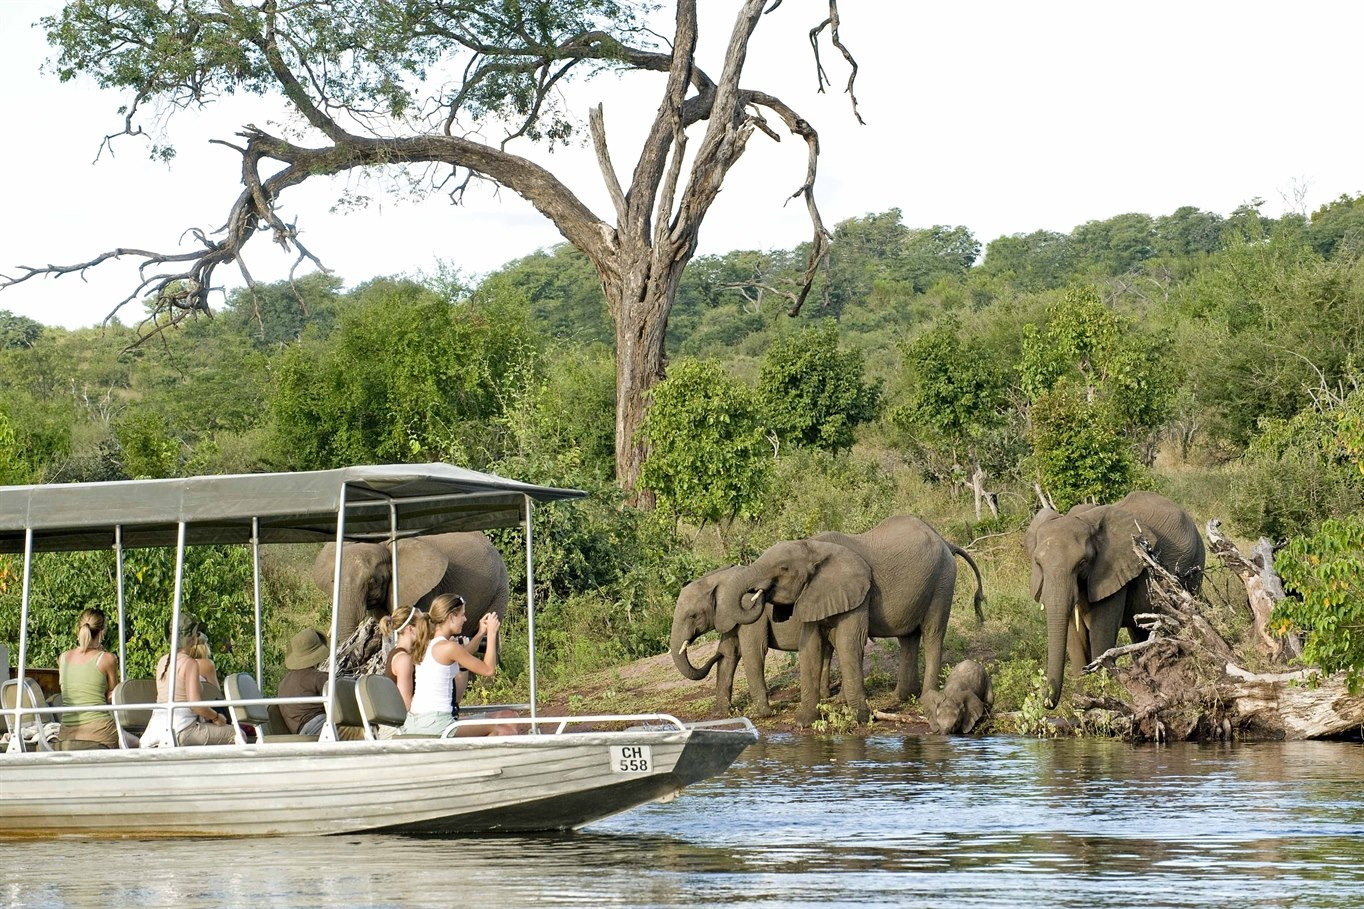 Elephants at Sanctuary Chobe Chilwero